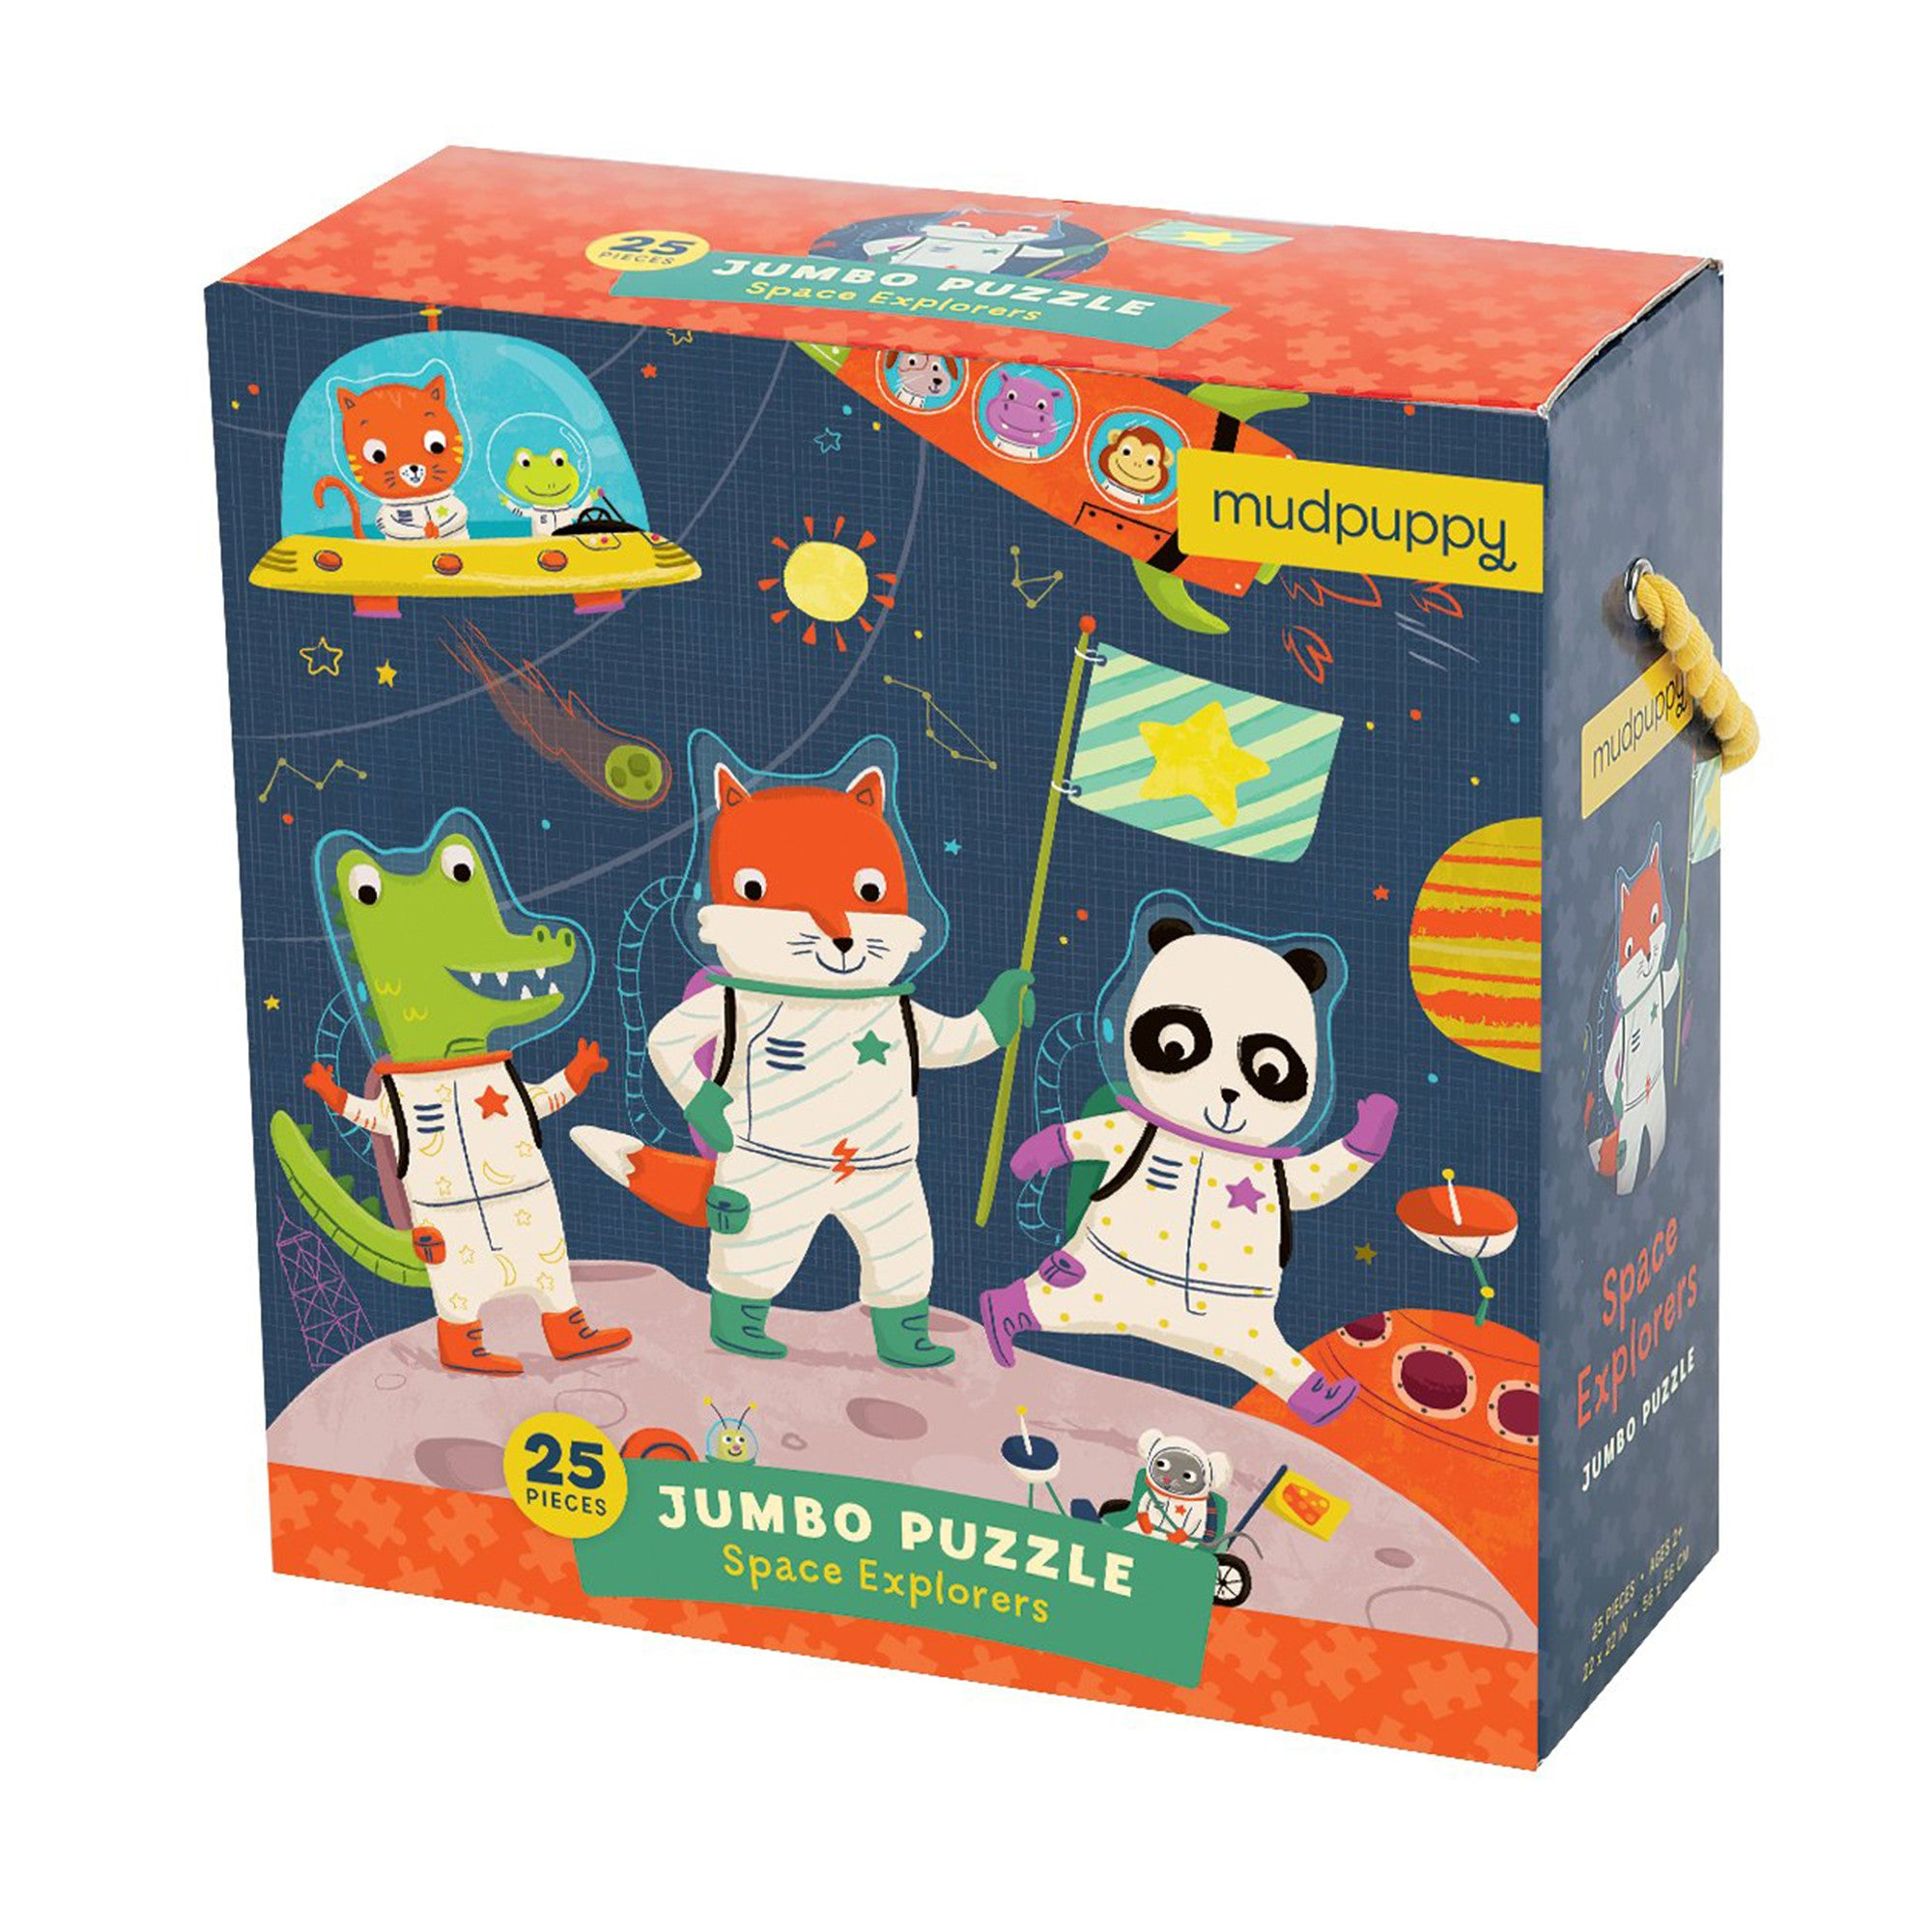 MudPuppy Jumbo Puzzle 25 Piece Mudpuppy Puzzles Space Explorers at Little Earth Nest Eco Shop